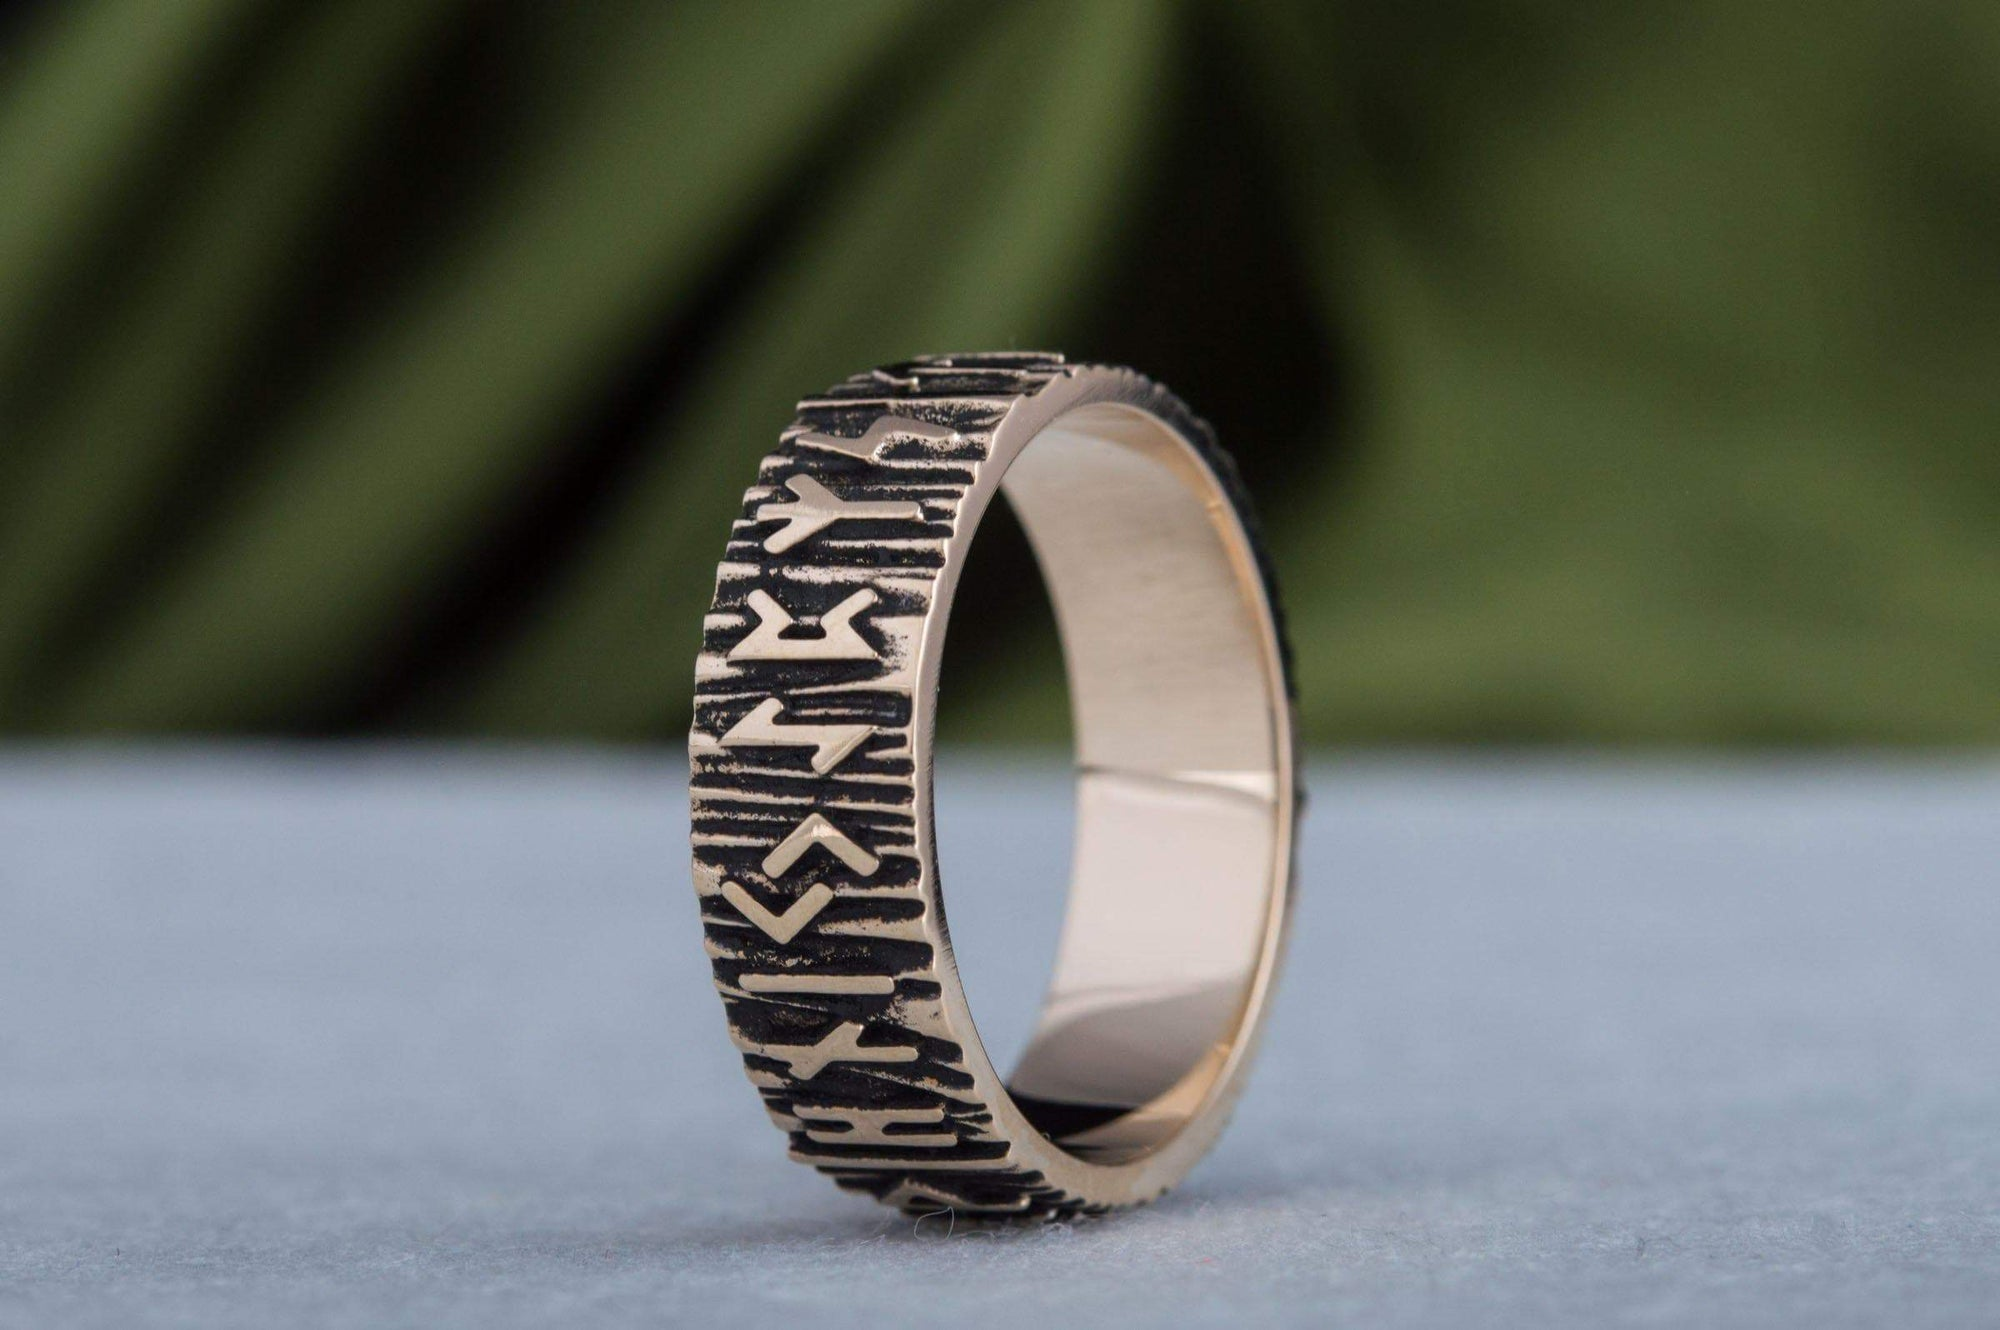 Rings Viking Wooden Textured Elder Futhark Runes Norse Ring Ancient Treasures Ancientreasures Viking Odin Thor Mjolnir Celtic Ancient Egypt Norse Norse Mythology